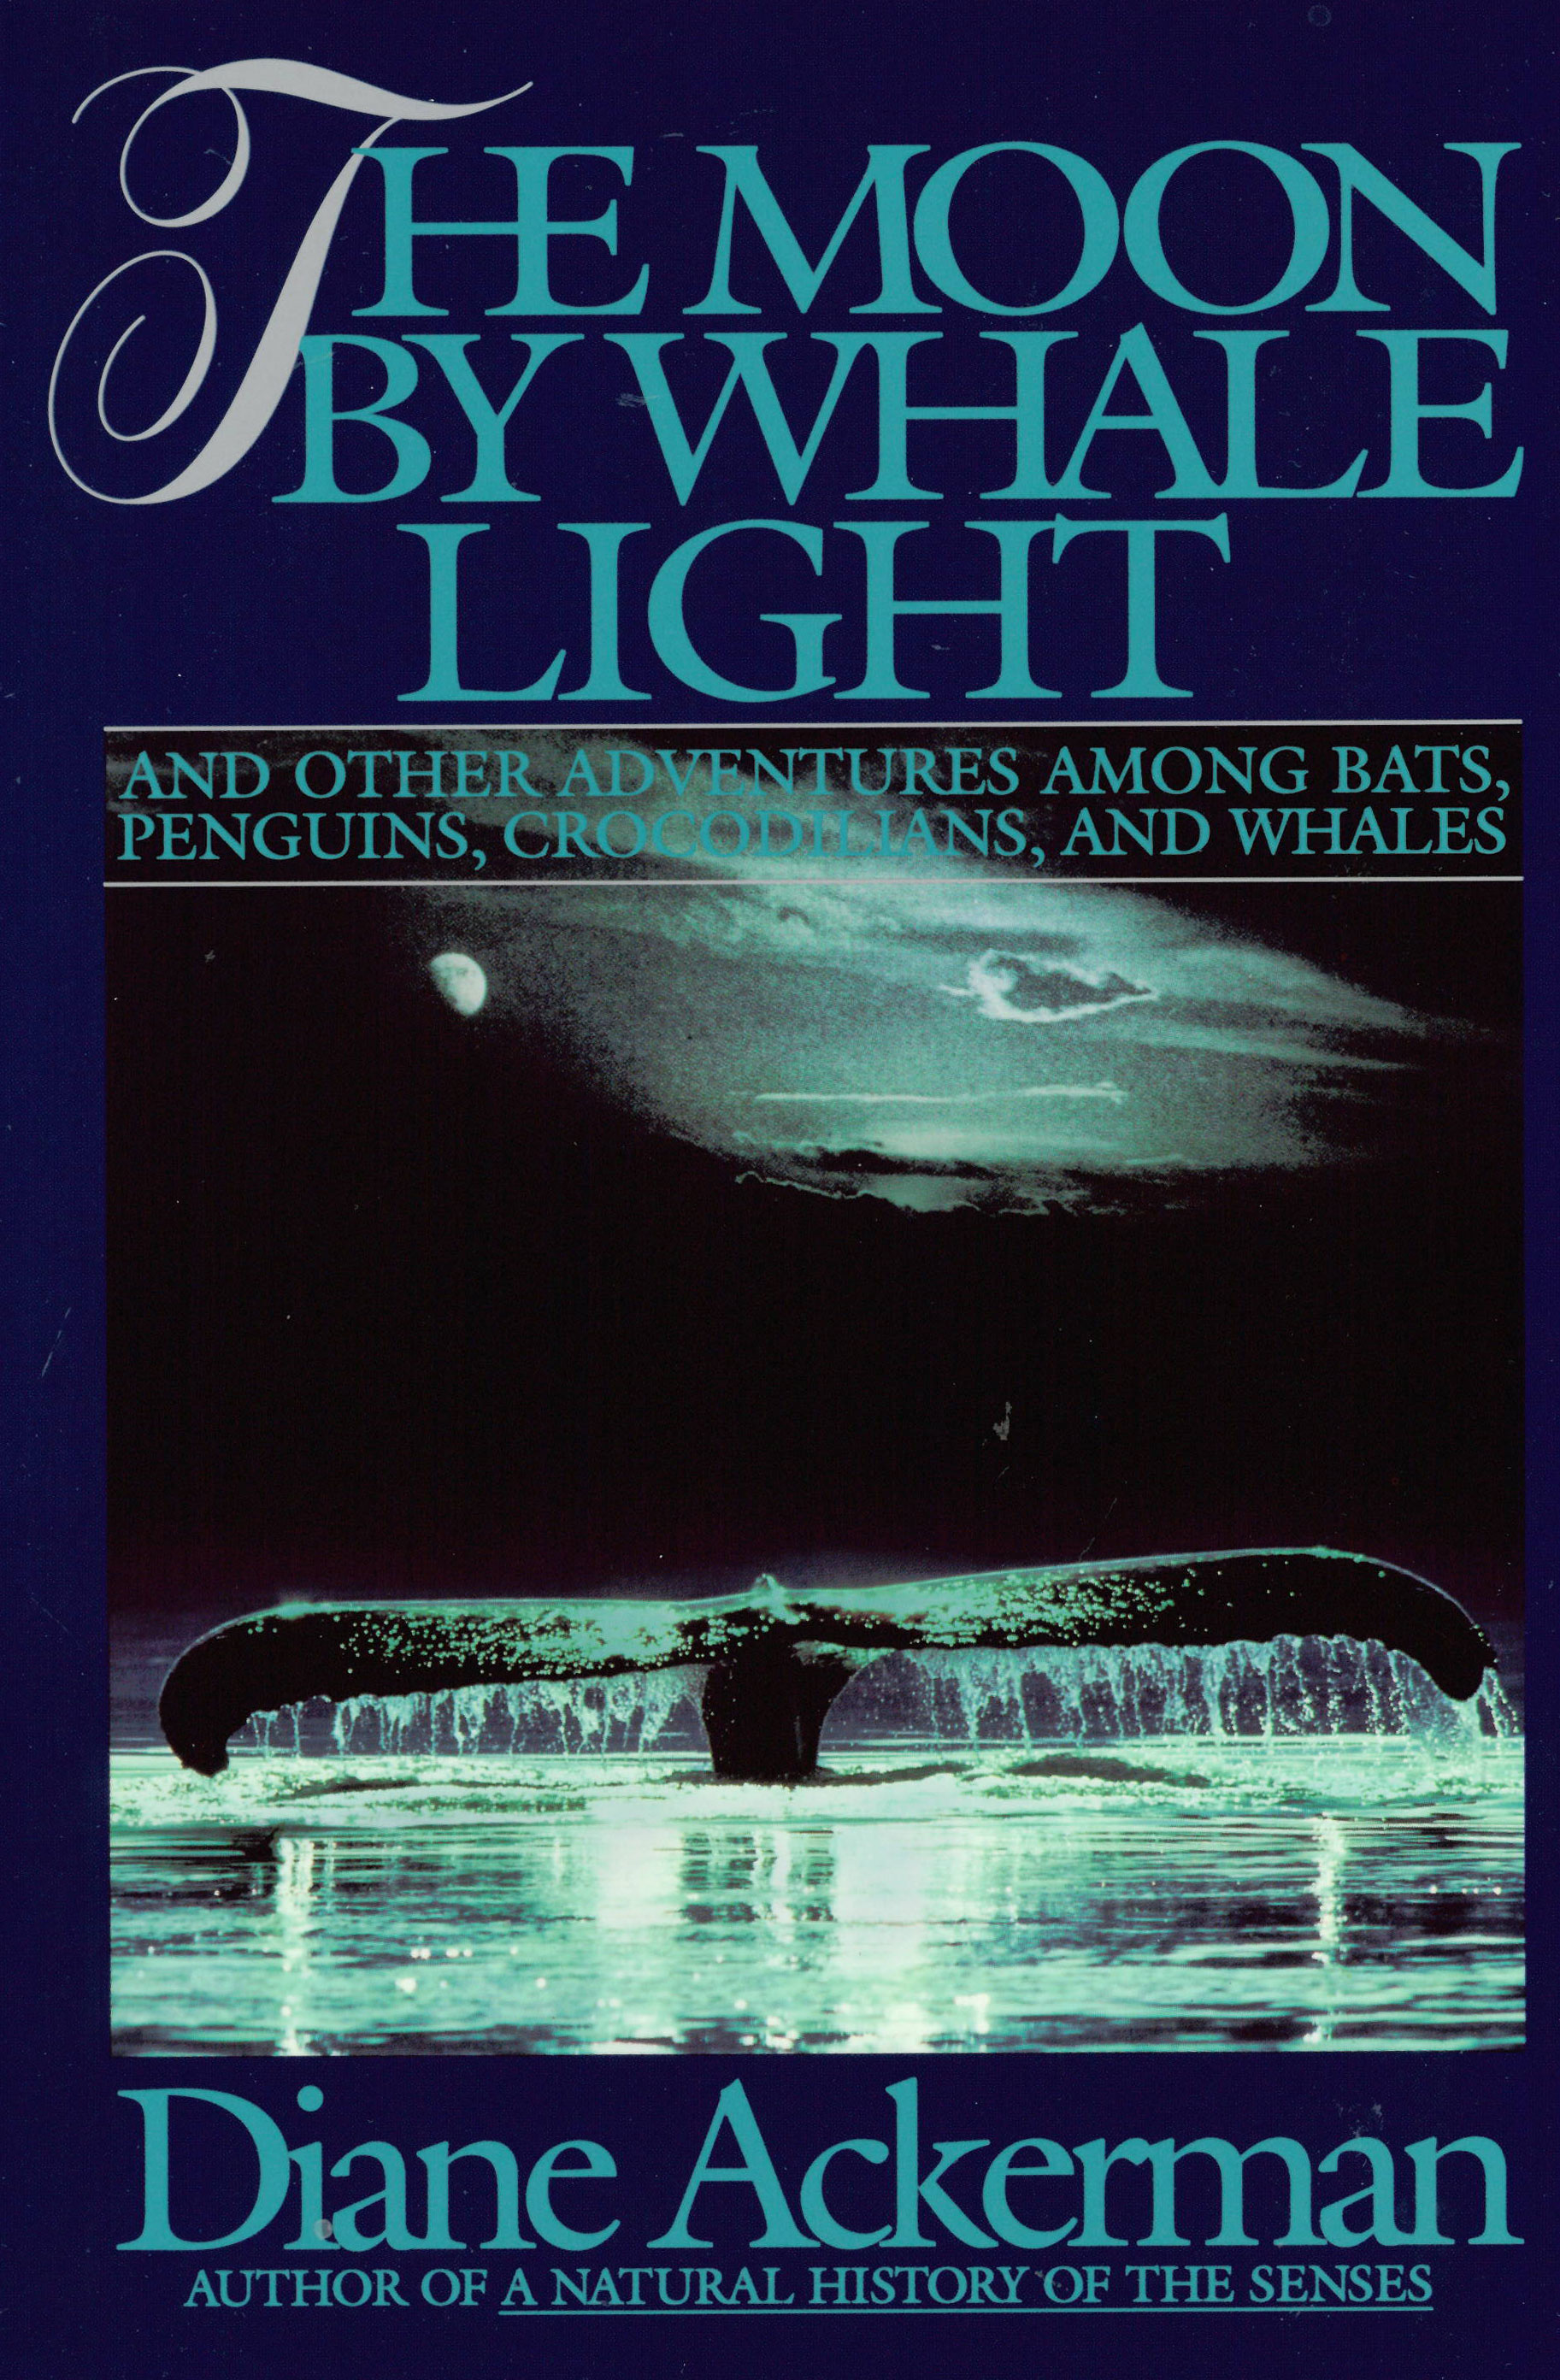 Moon by Whale Light hardcover